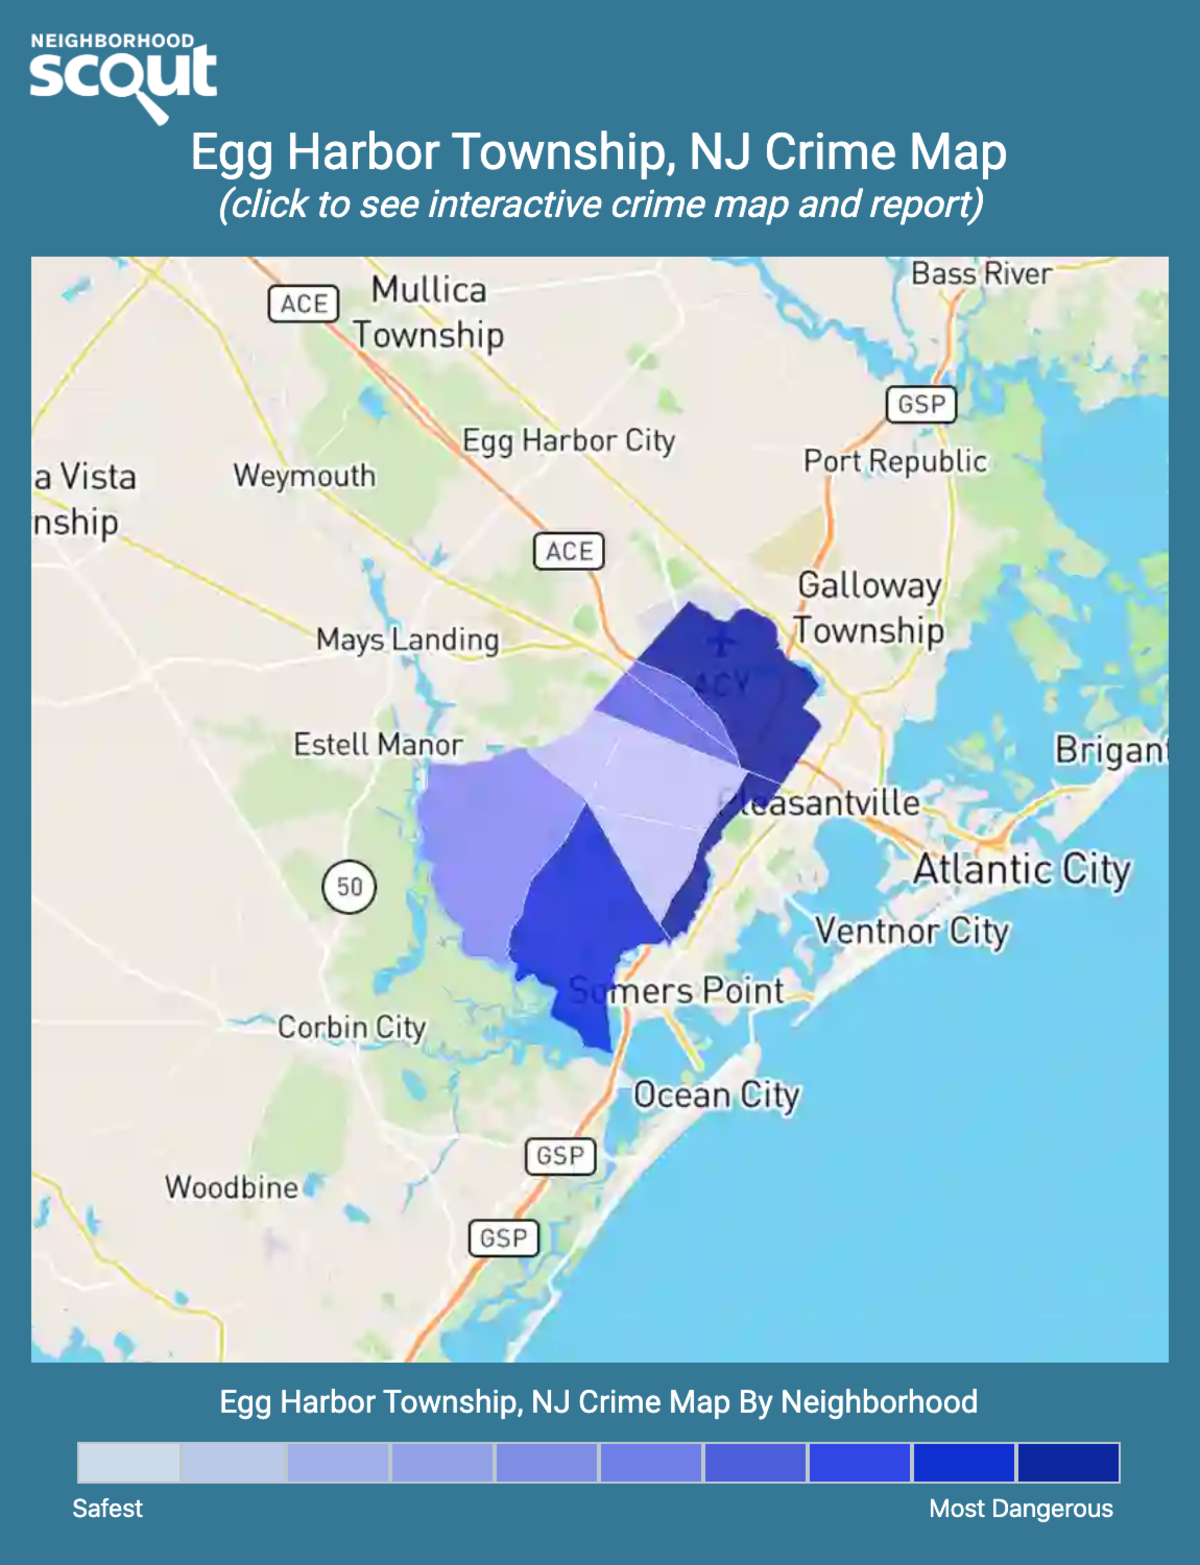 Egg Harbor Township, New Jersey crime map